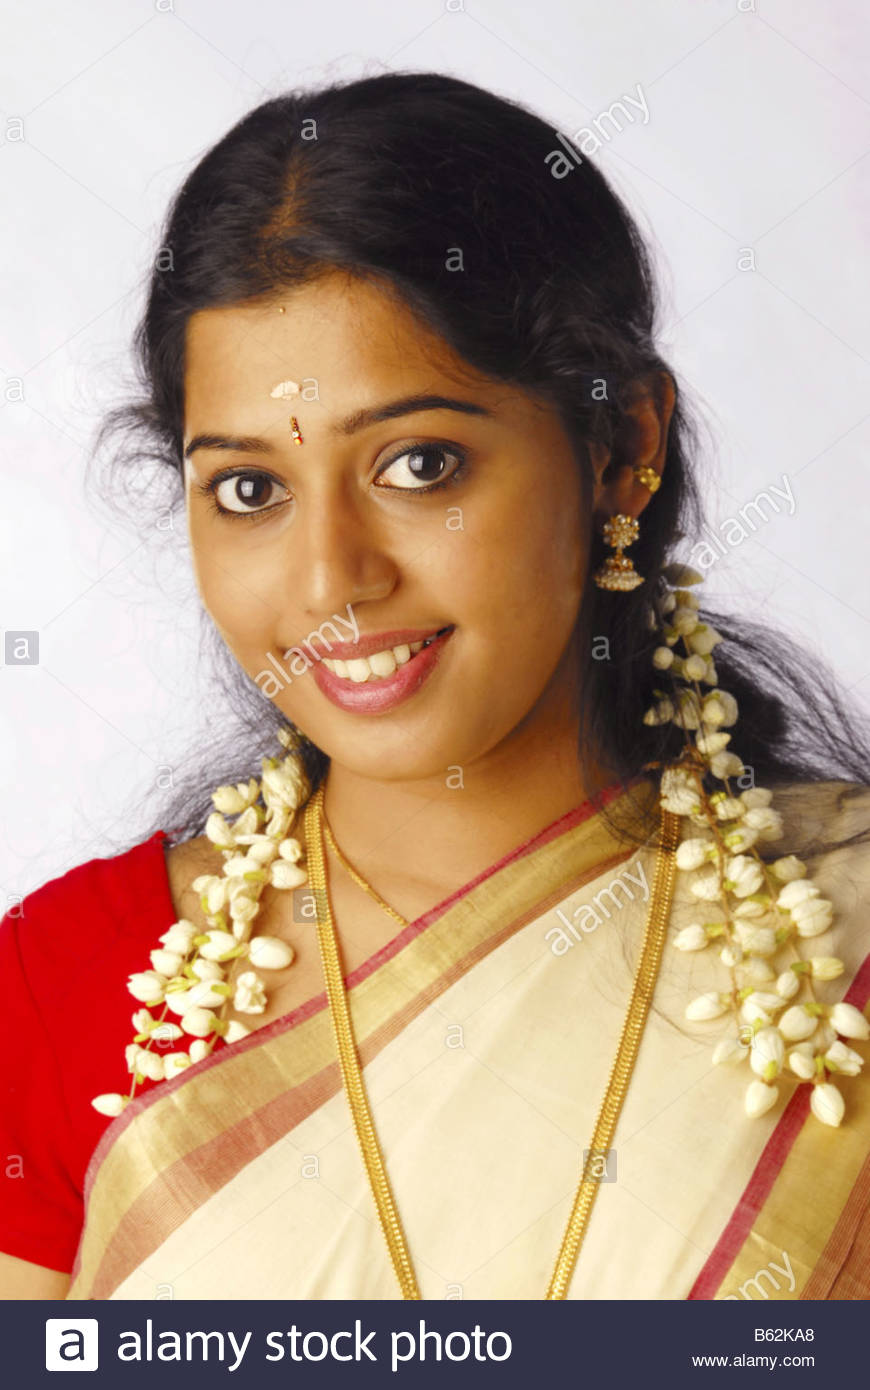 Charmant A MODEL FROM KERALA IN TRADITIONAL ATTIRE DURING ONAM Stock ...